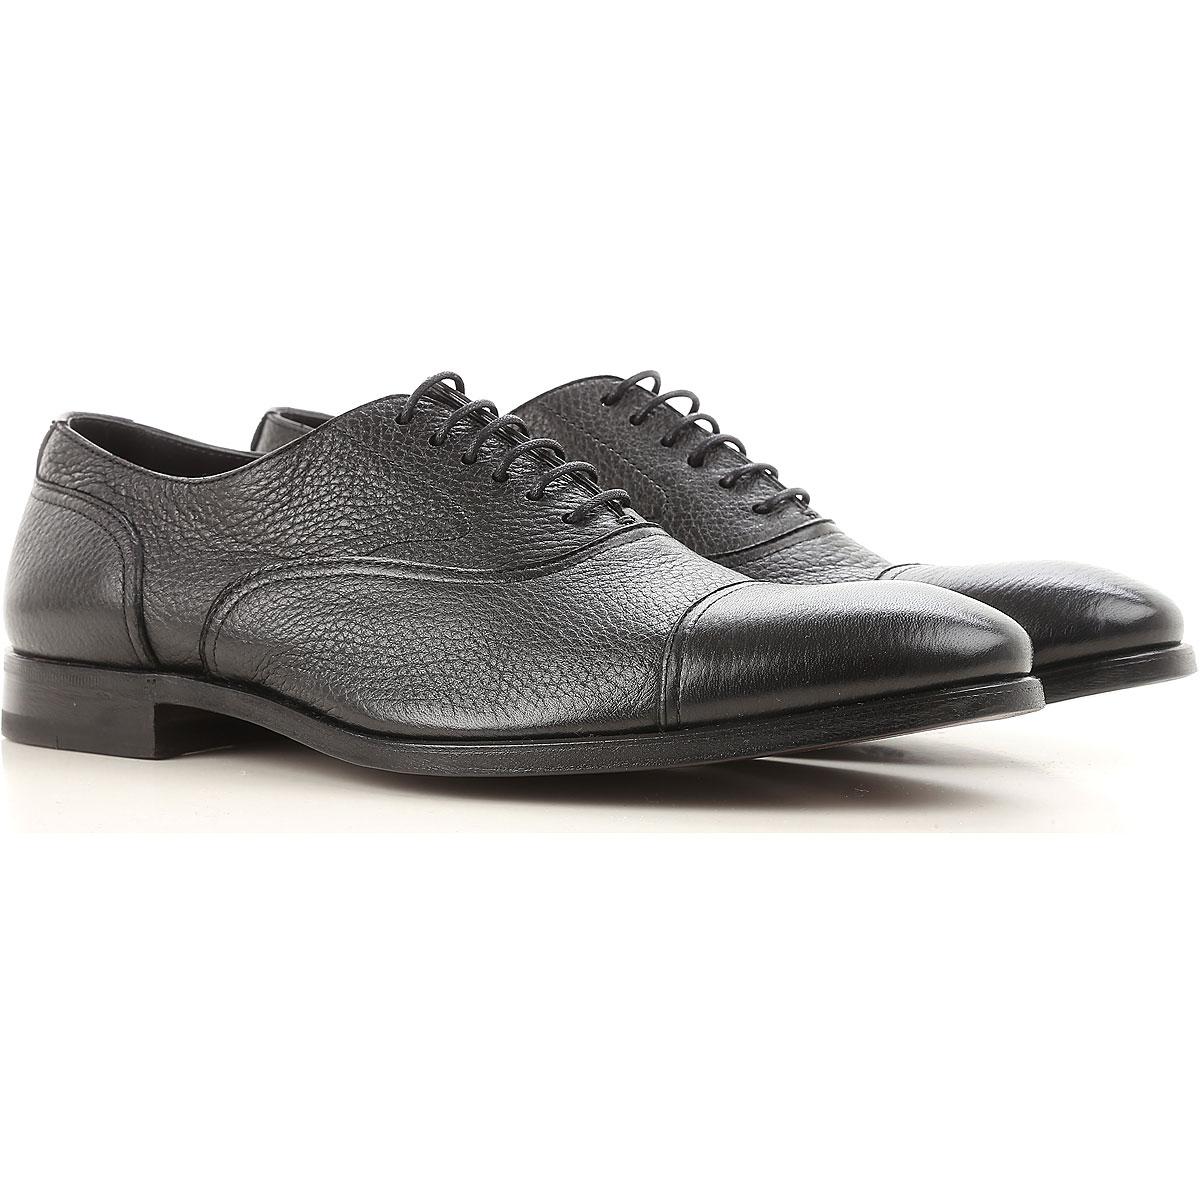 Image of Henderson Lace Up Shoes for Men Oxfords, Derbies and Brogues, Black, Leather, 2017, 10 10.5 11 11.5 6 7.5 8 8.5 9 9.5